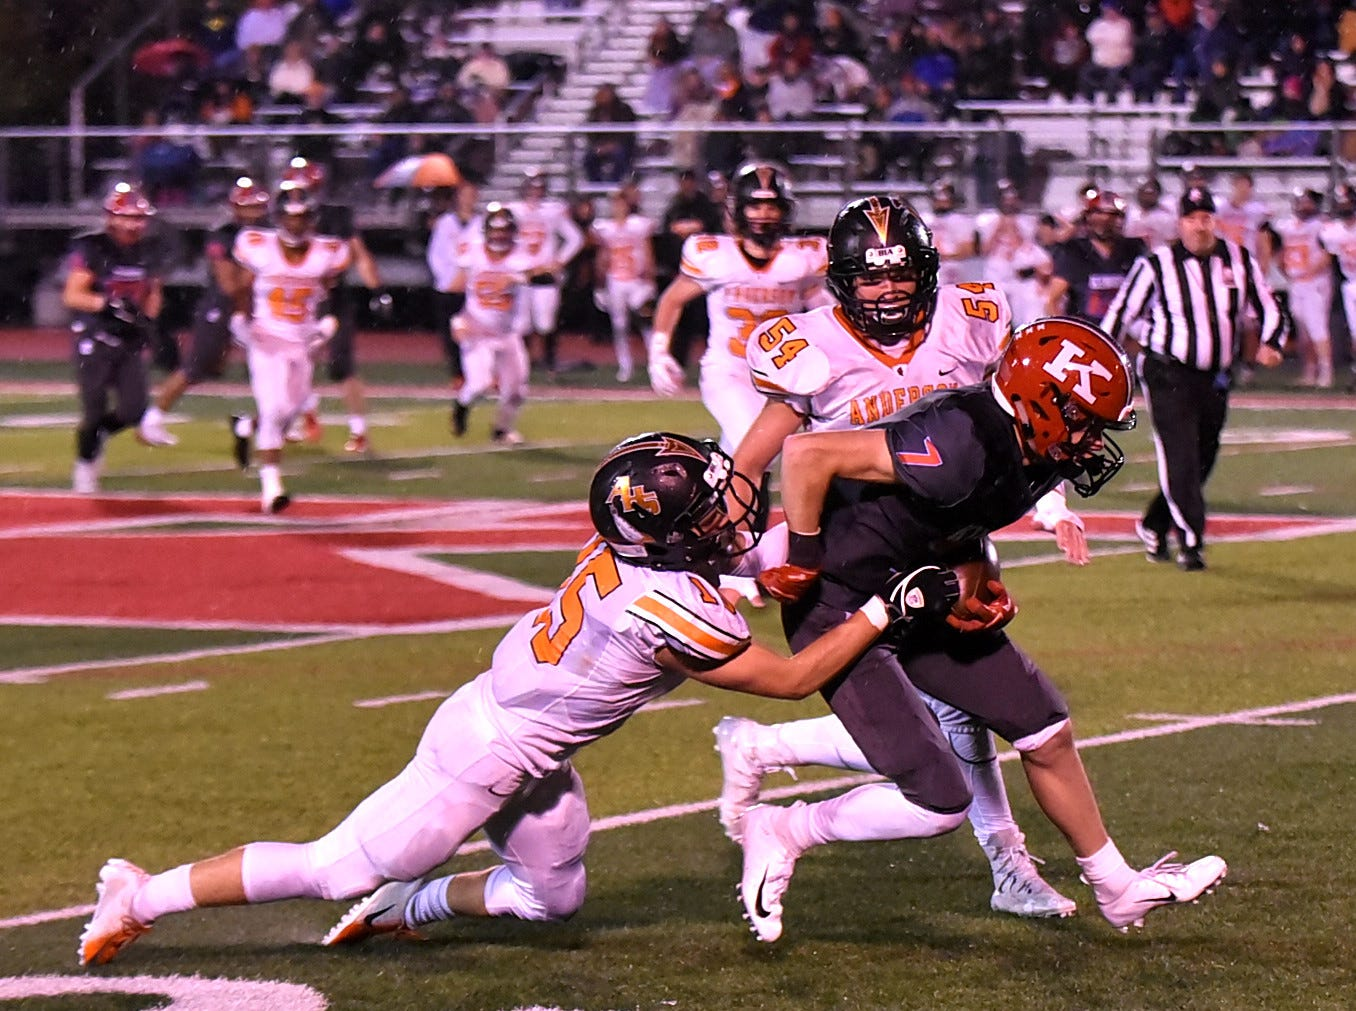 Jack McHugh (7) of Kings picks up first-down yards while dragging the Anderson defense with him in the Division 2 Region quarterfinal playoff game, November 2, 2018.